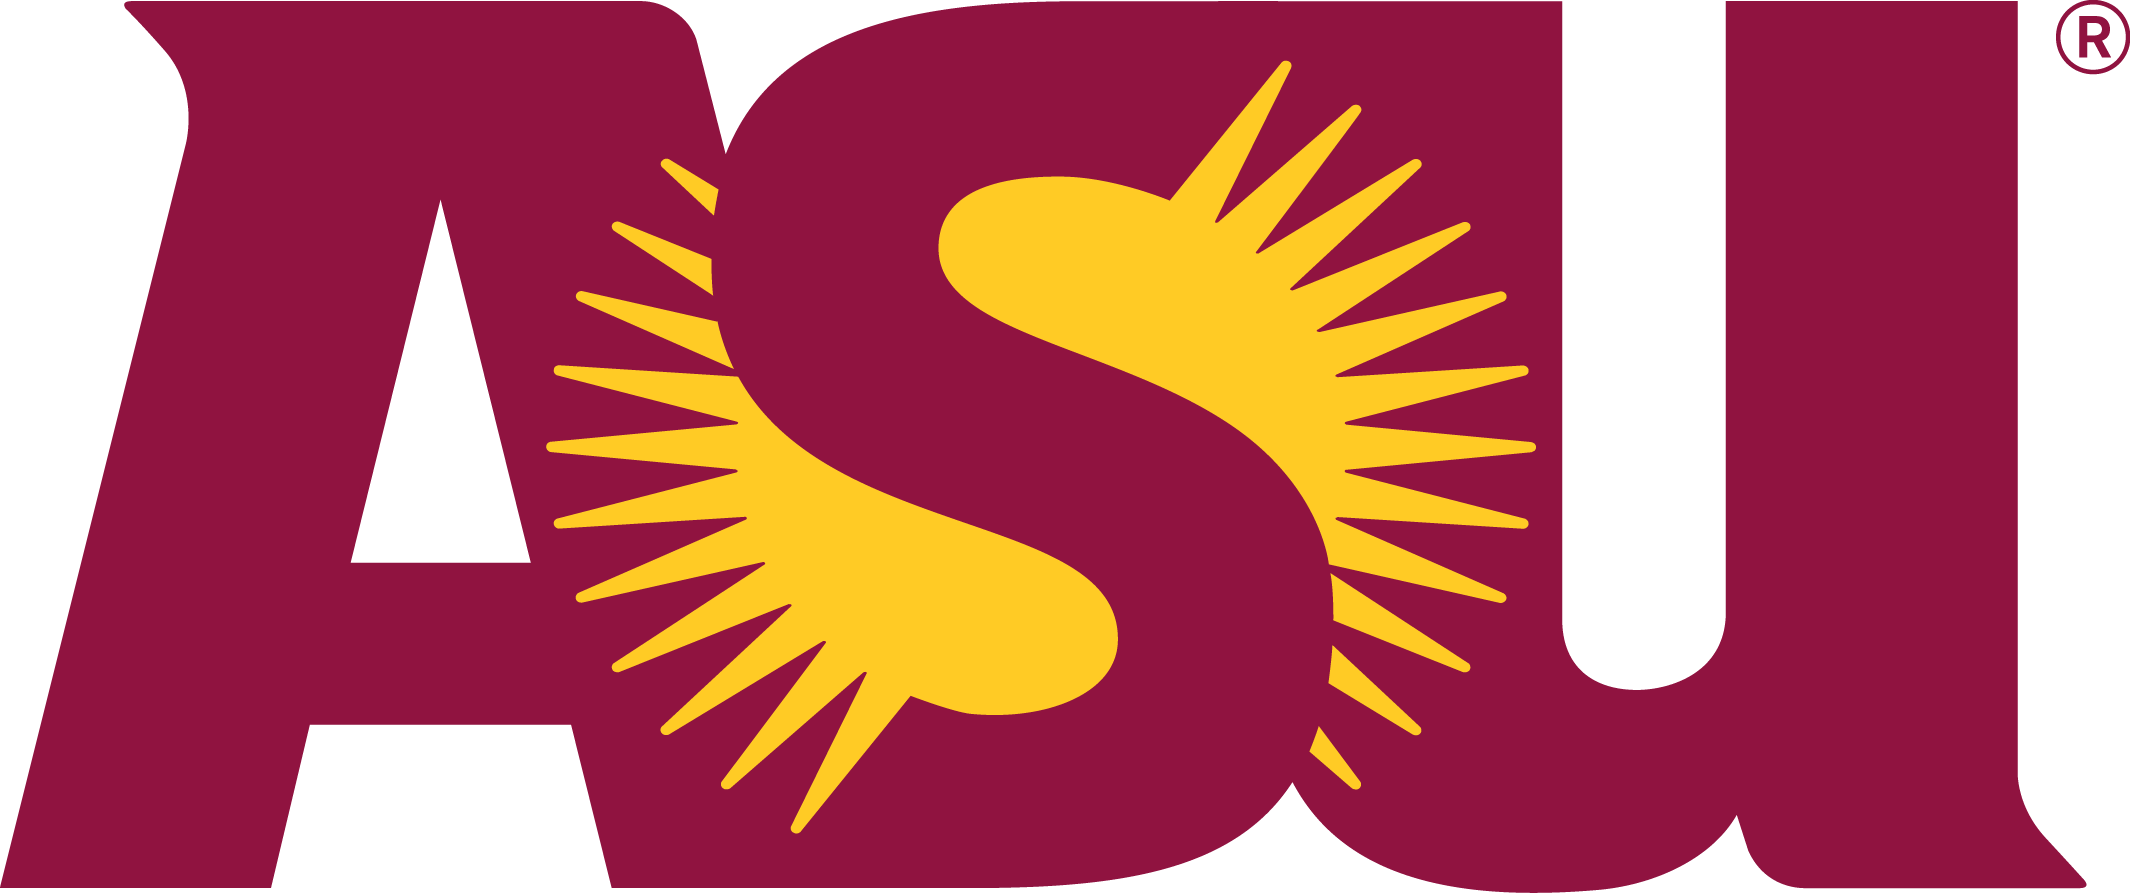 ASU Logo   Arizona State University